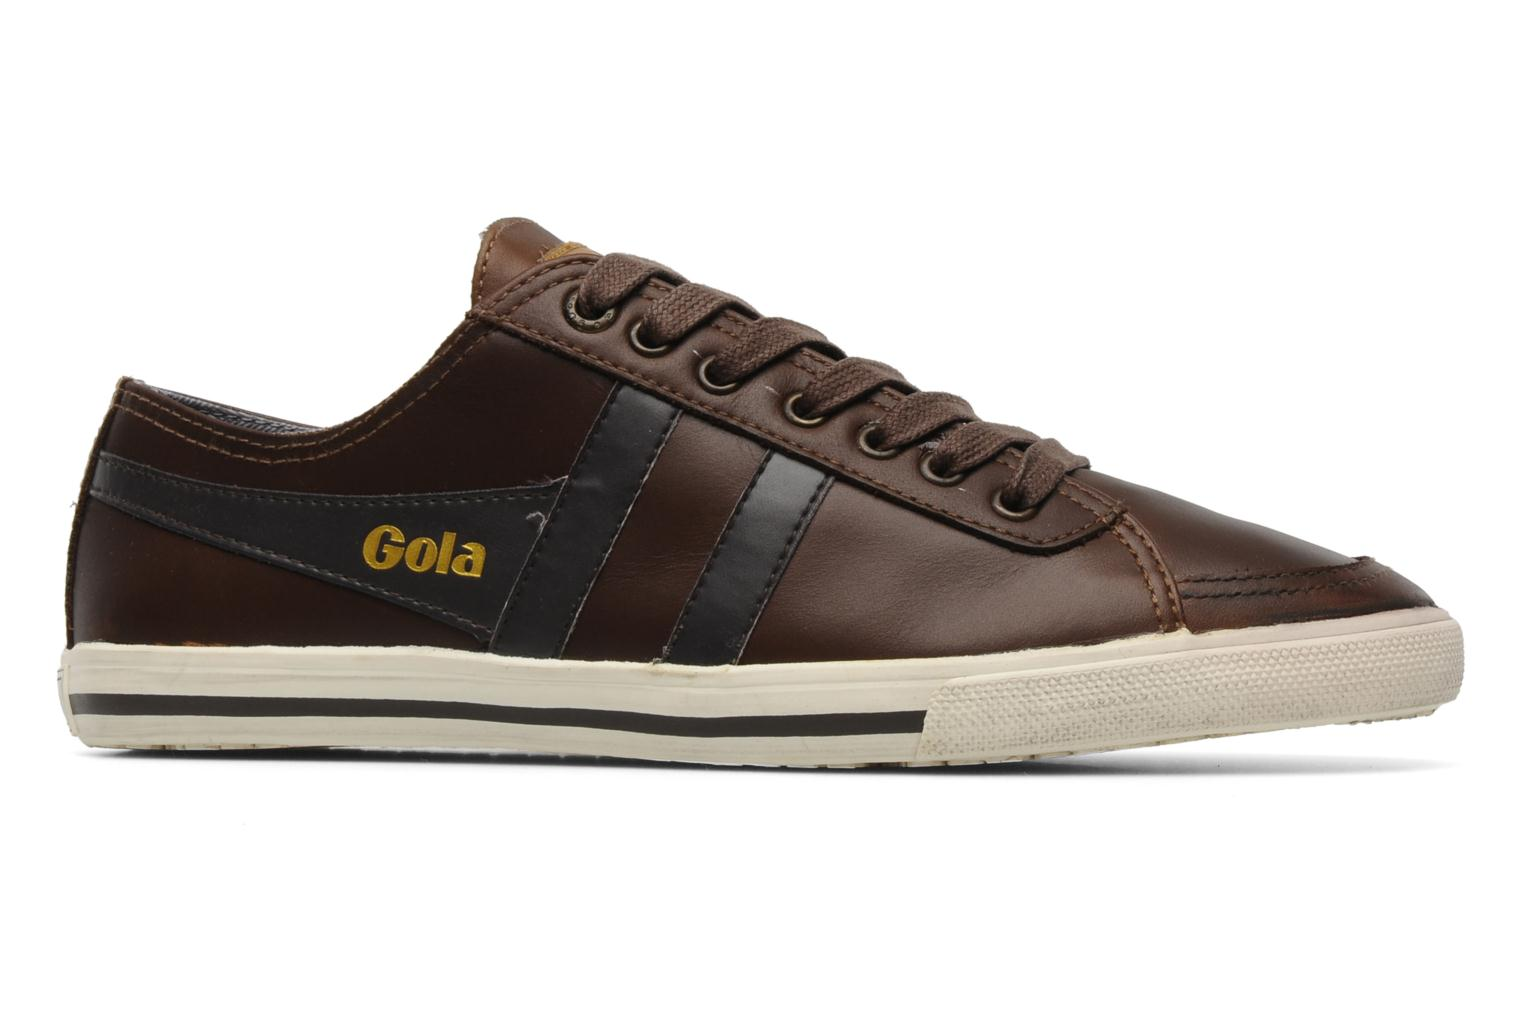 Quota premium m Tan-Dark Brown